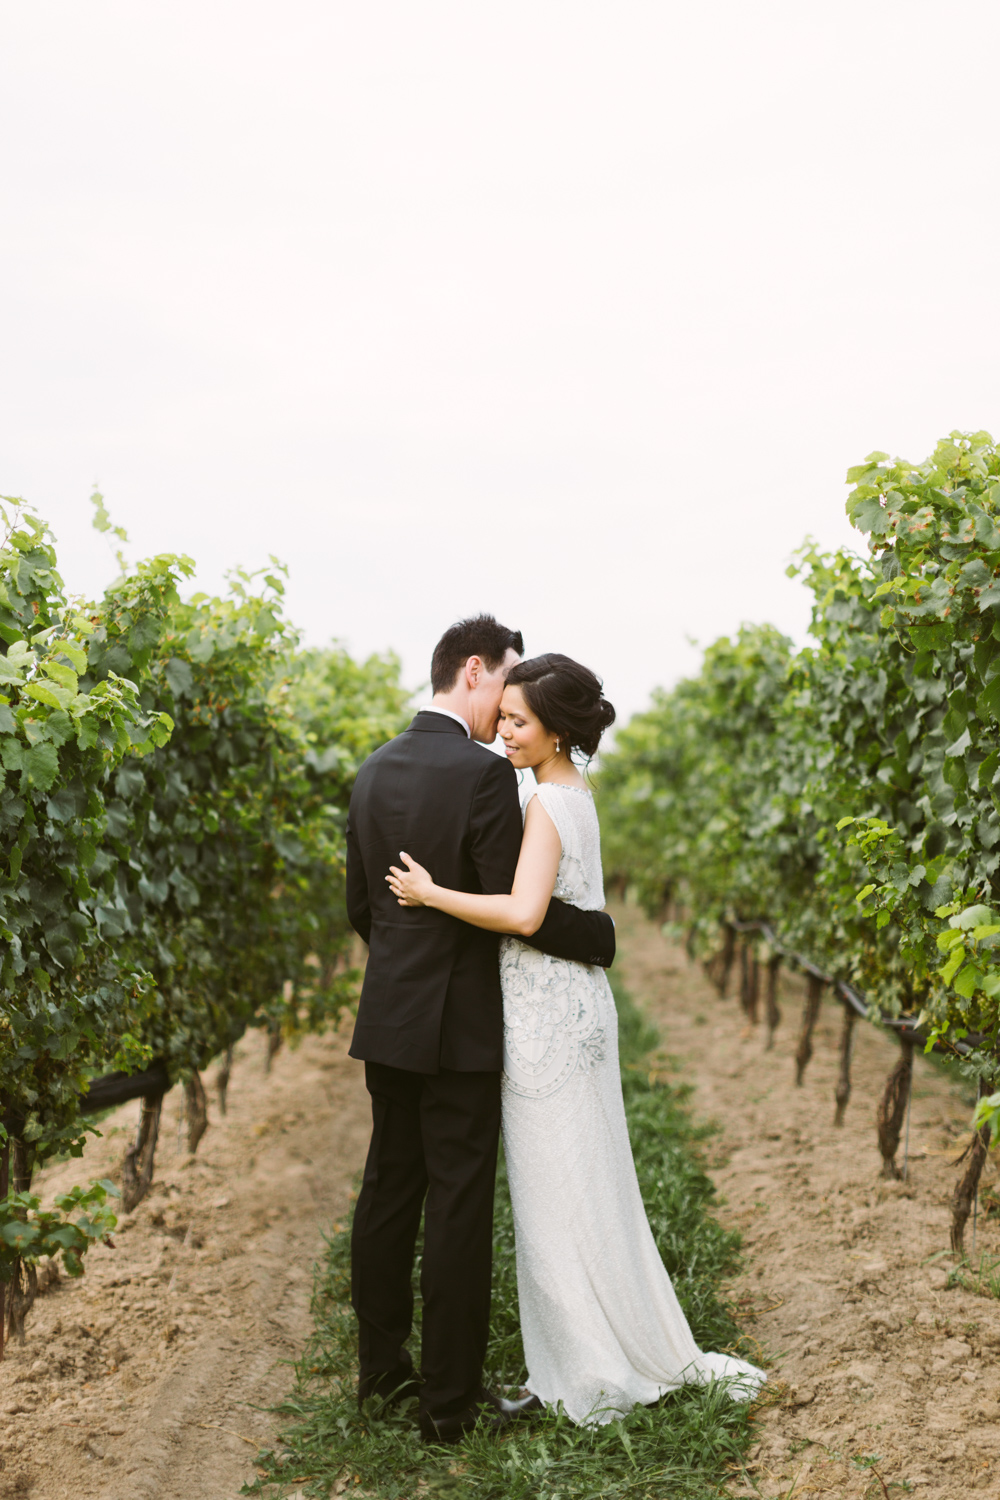 Romantic couple embracing in a vineyard